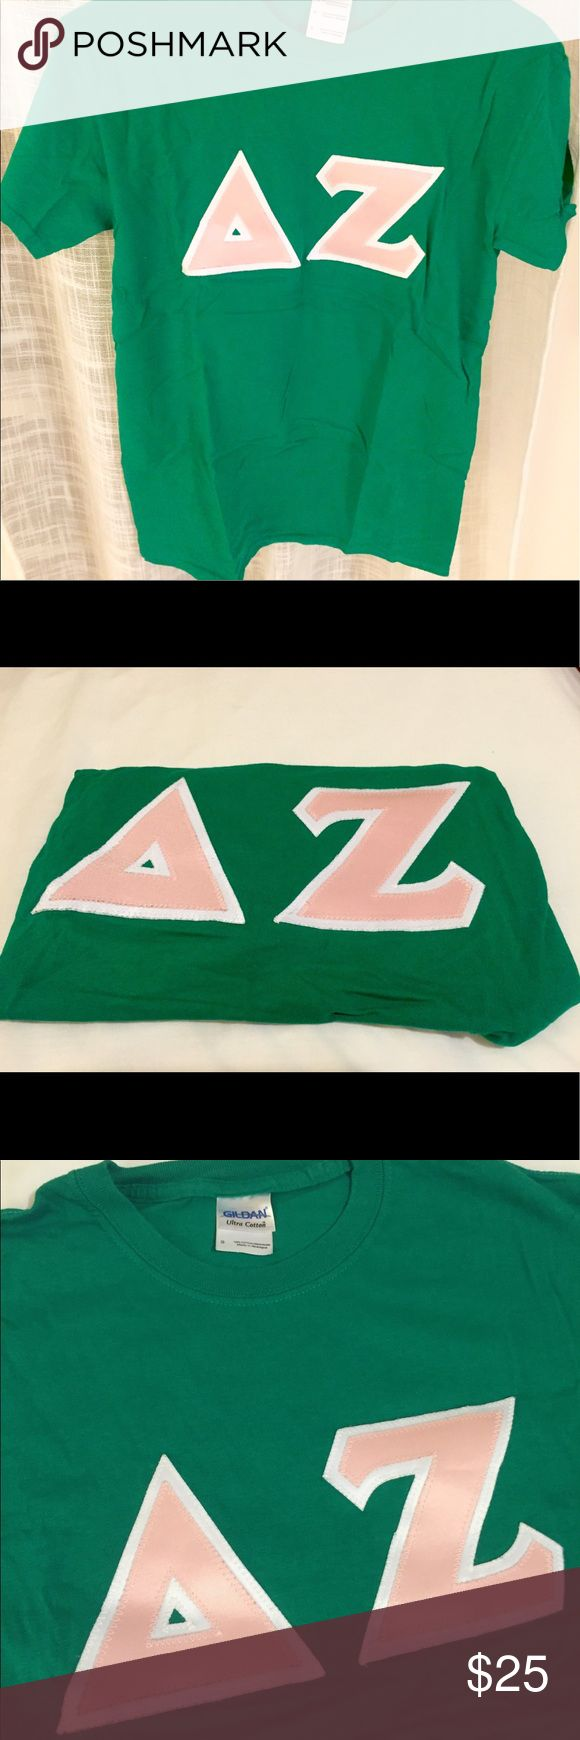 Delta Zeta Block Letter T shirt🐢 DZ cotton Tshirt. Size S. Green with light pink letters and white border Tops Tees - Short Sleeve